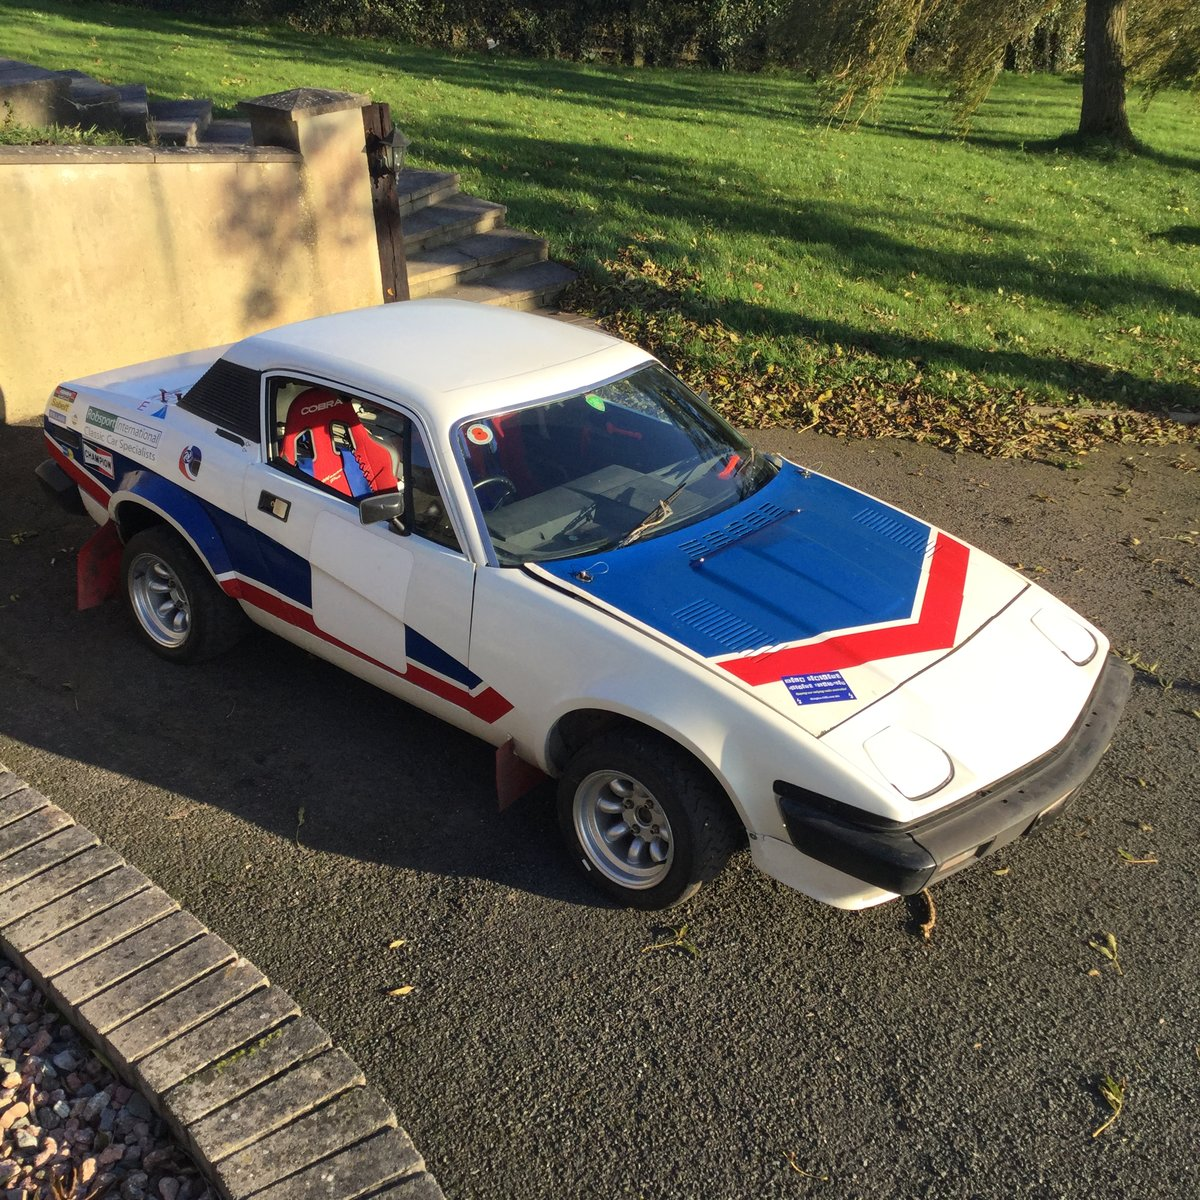 1979 Tr7 v8 rally car For Sale (picture 2 of 6)